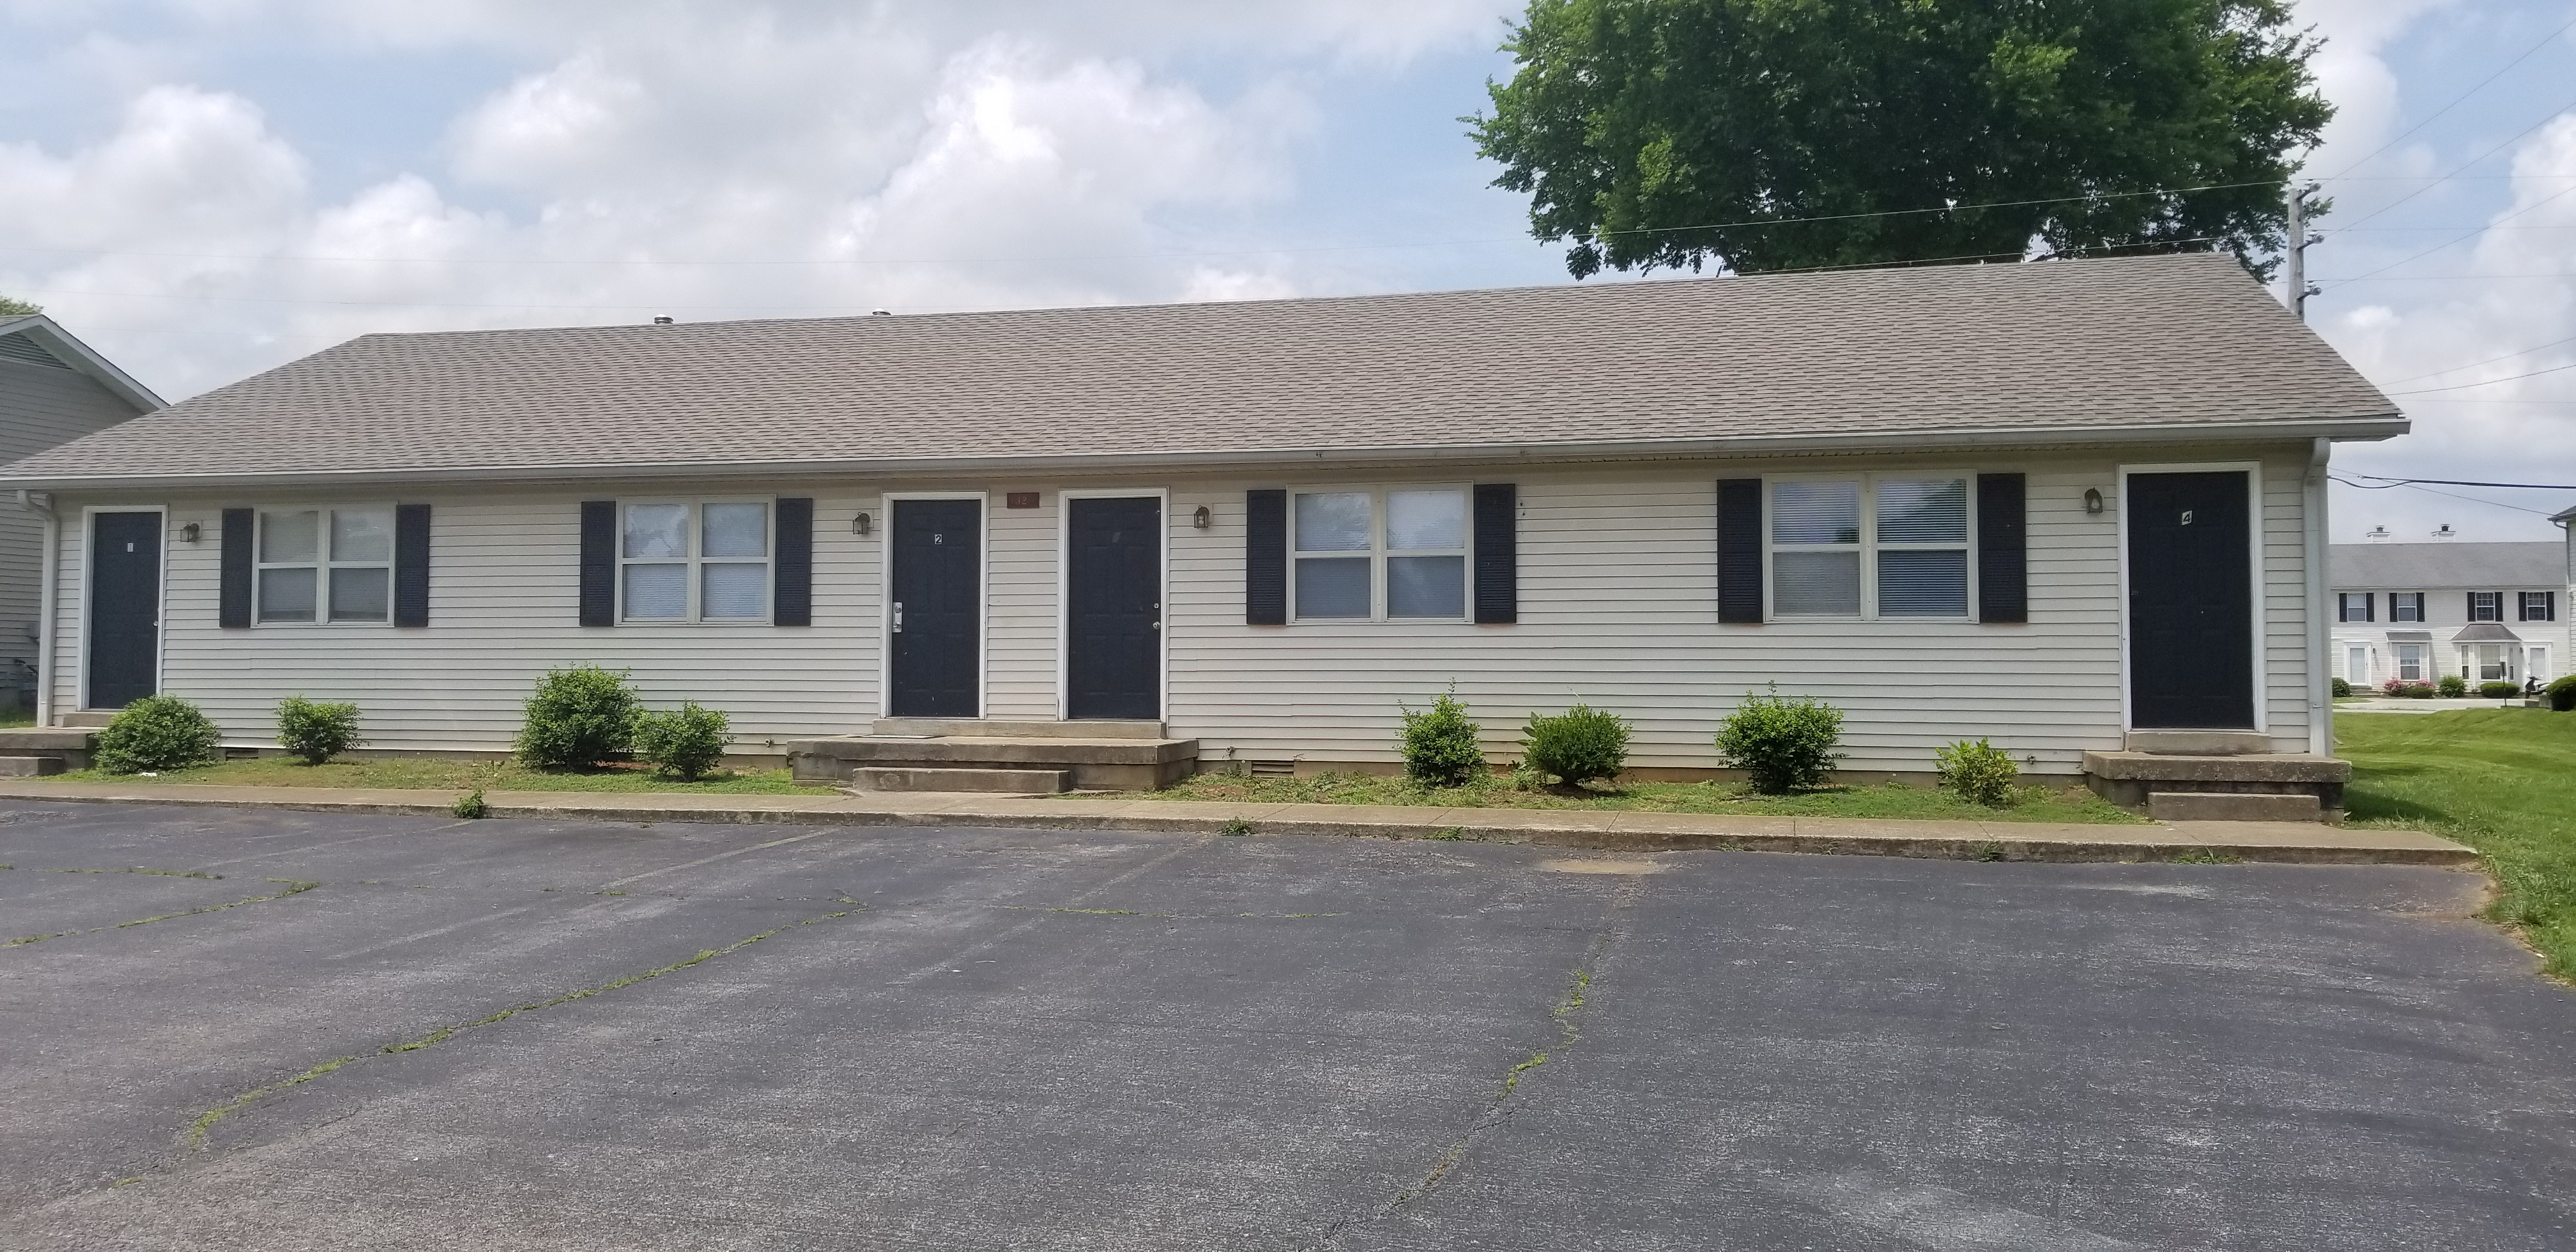 1325 Kenilwood Way Bowling Green, KY 42101